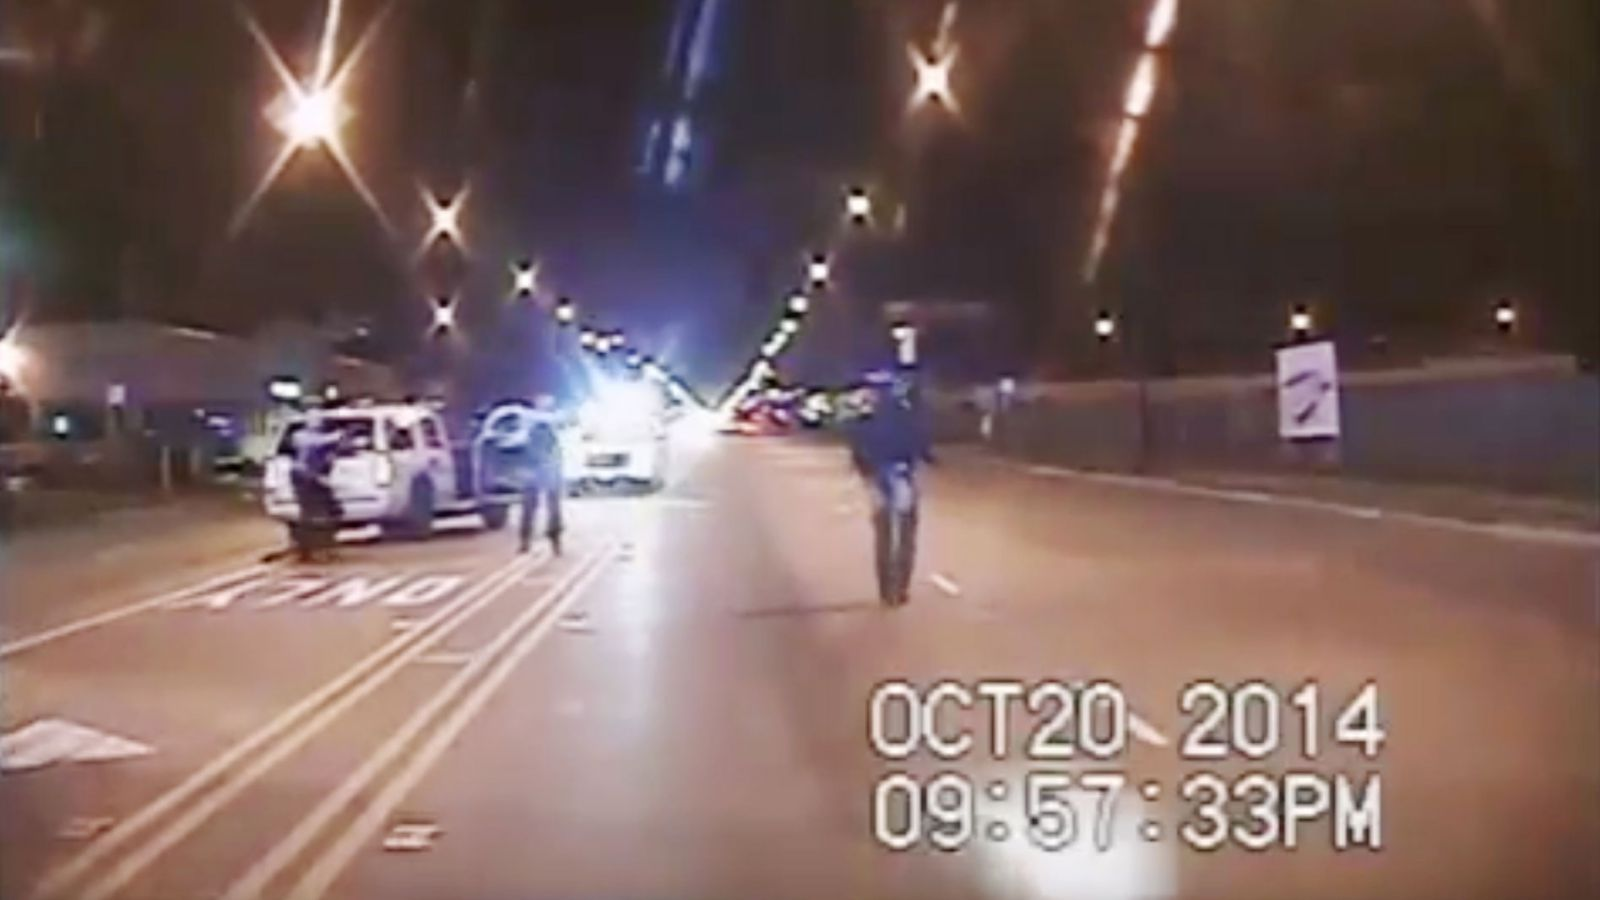 Screenshot from the released Laquan McDonald video